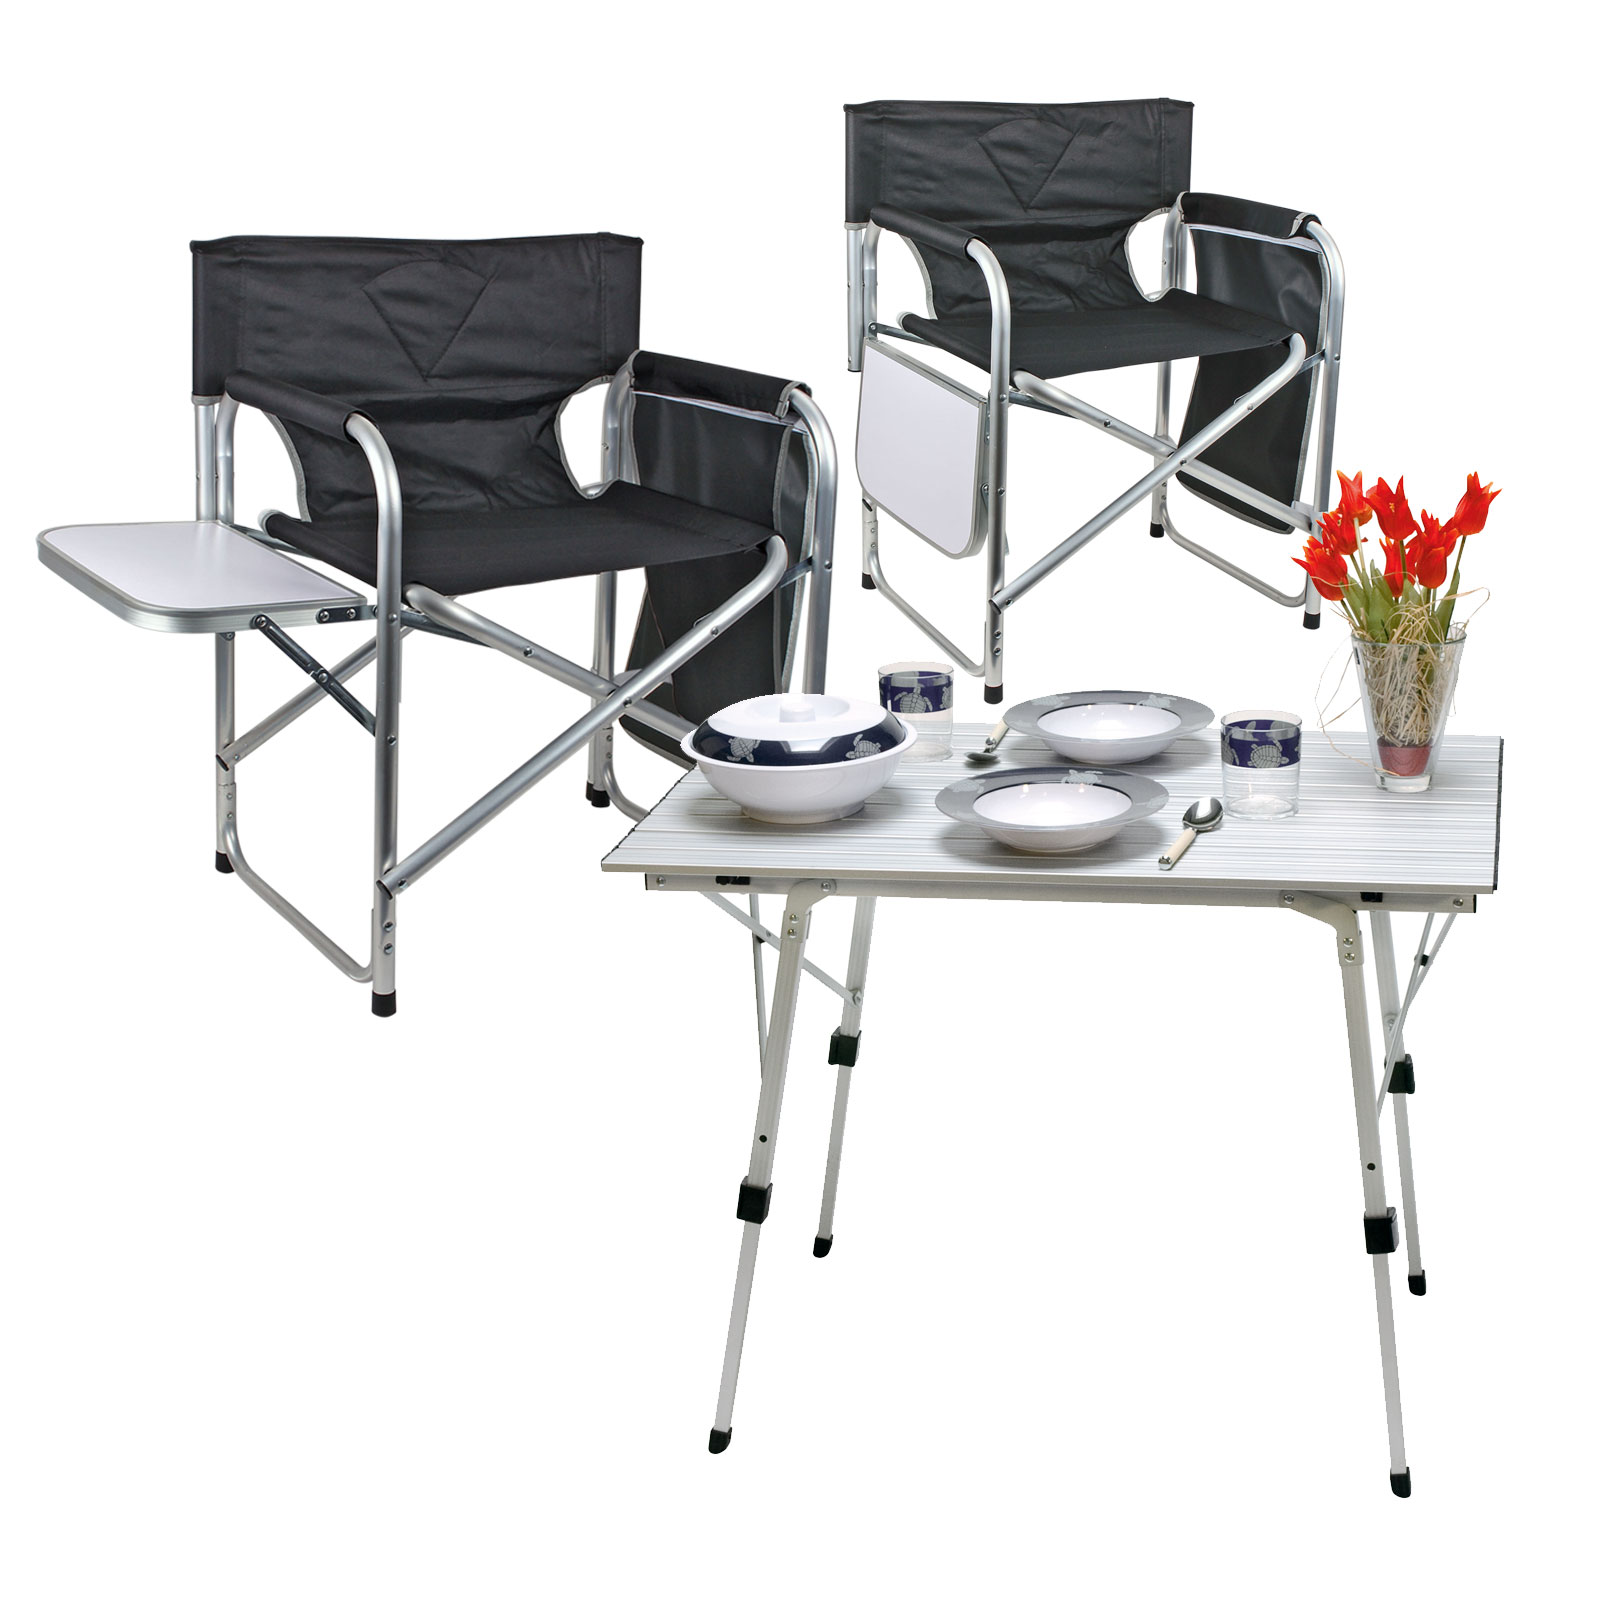 camping m bel set 1x tisch bali 2x campingstuhl klappbar mit ablage utensilo ebay. Black Bedroom Furniture Sets. Home Design Ideas